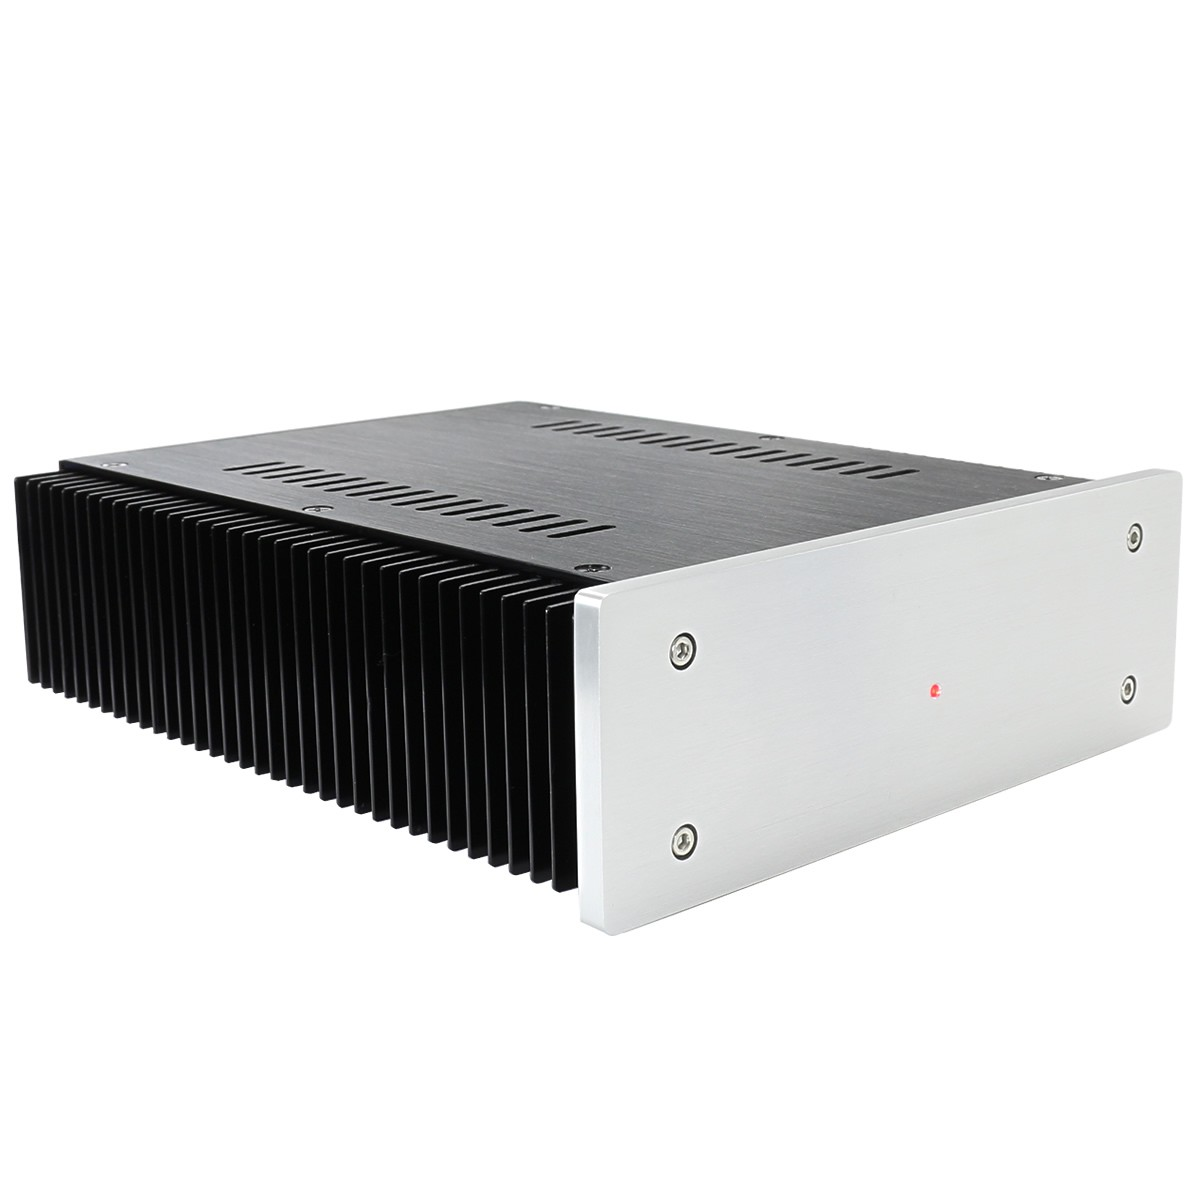 LPSU200 HiFi Linear Supply High Fidelity 12V + 12V 6.5A 200W NAS / Freebox / Squeezebox